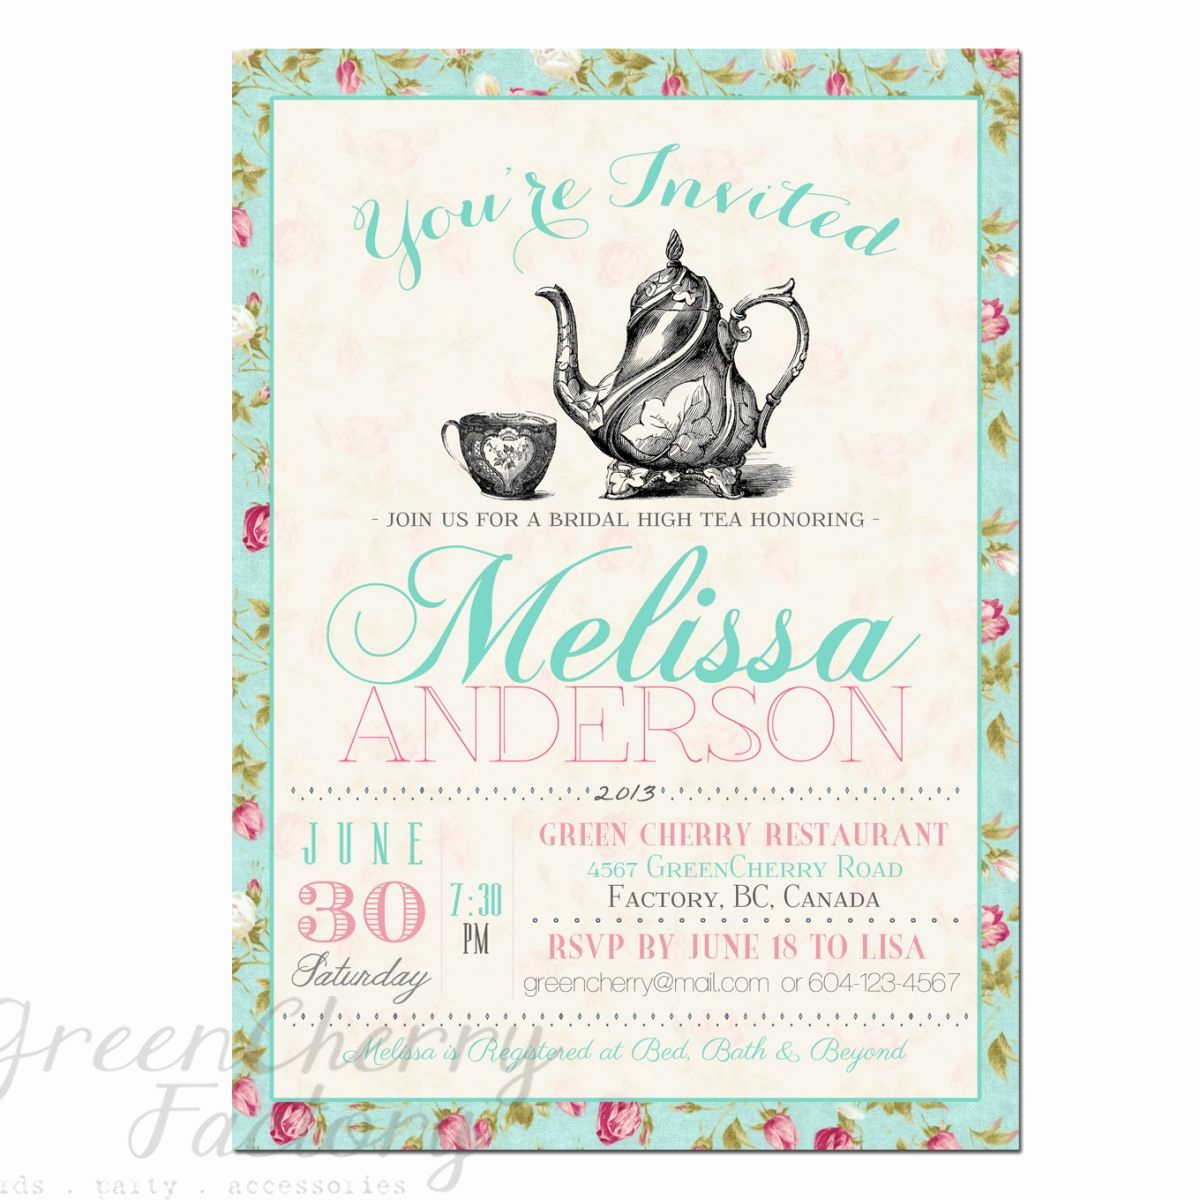 High Tea Invitation Template New Tea Party Invitation Templates to Print